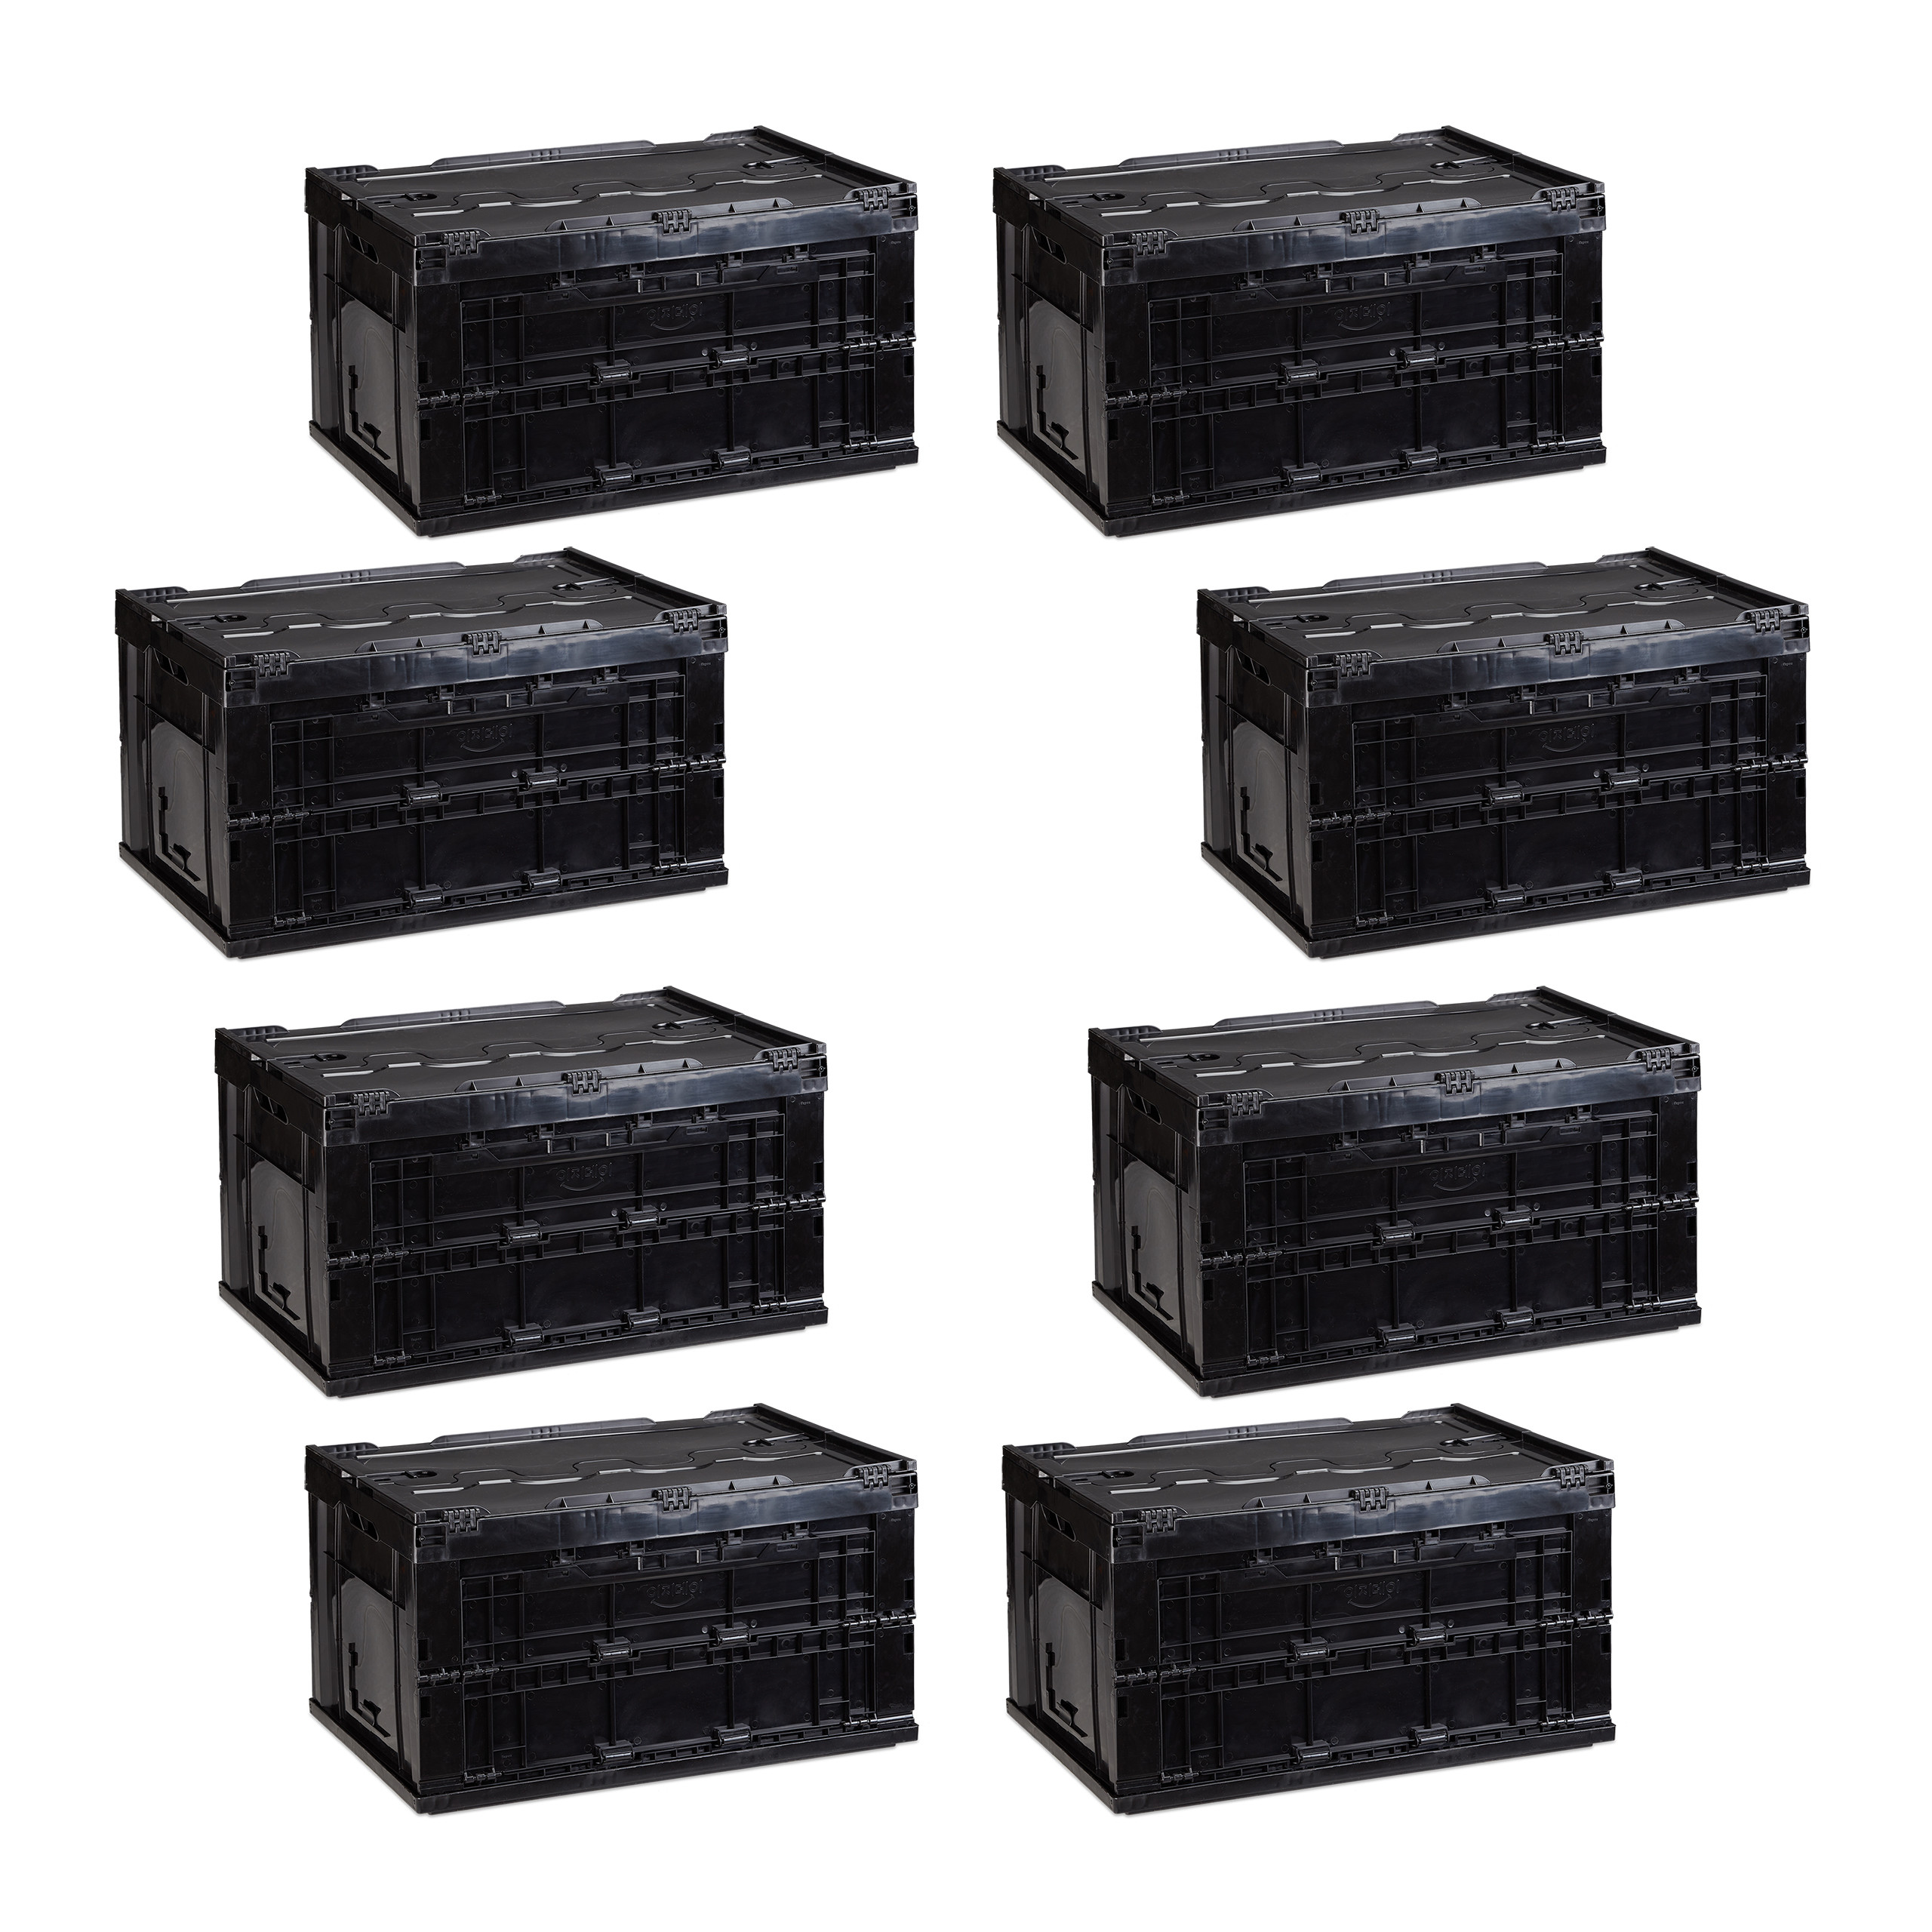 8er set faltbox mit deckel aufbewahrungsbox klappbar stapelbox klappbox schwarz ebay. Black Bedroom Furniture Sets. Home Design Ideas